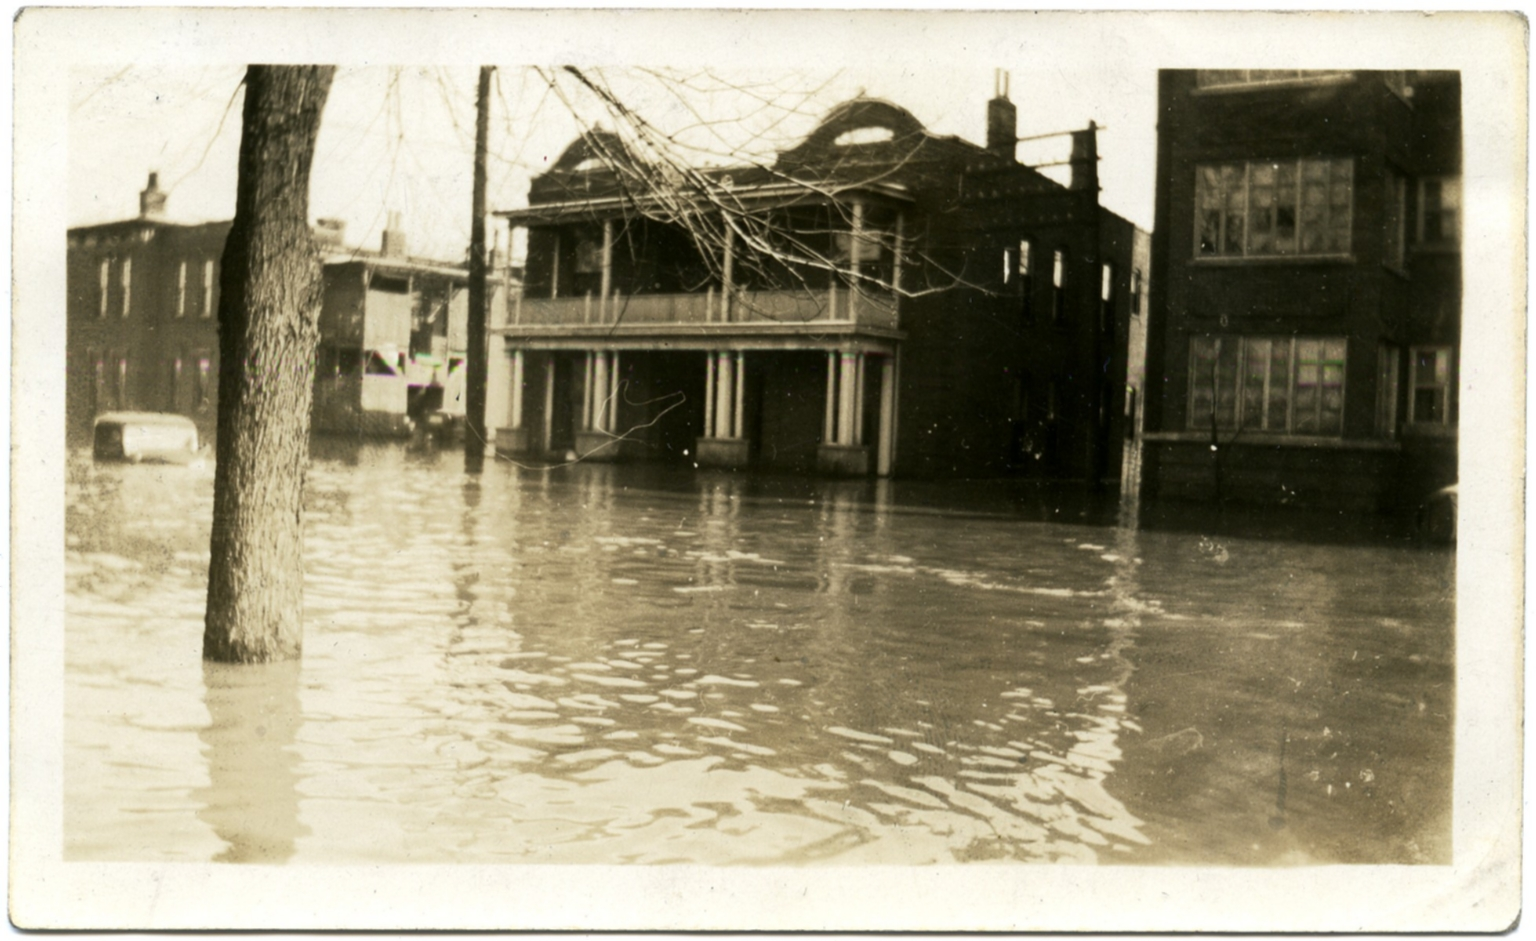 Apartments in Lowertown during '37 flood.